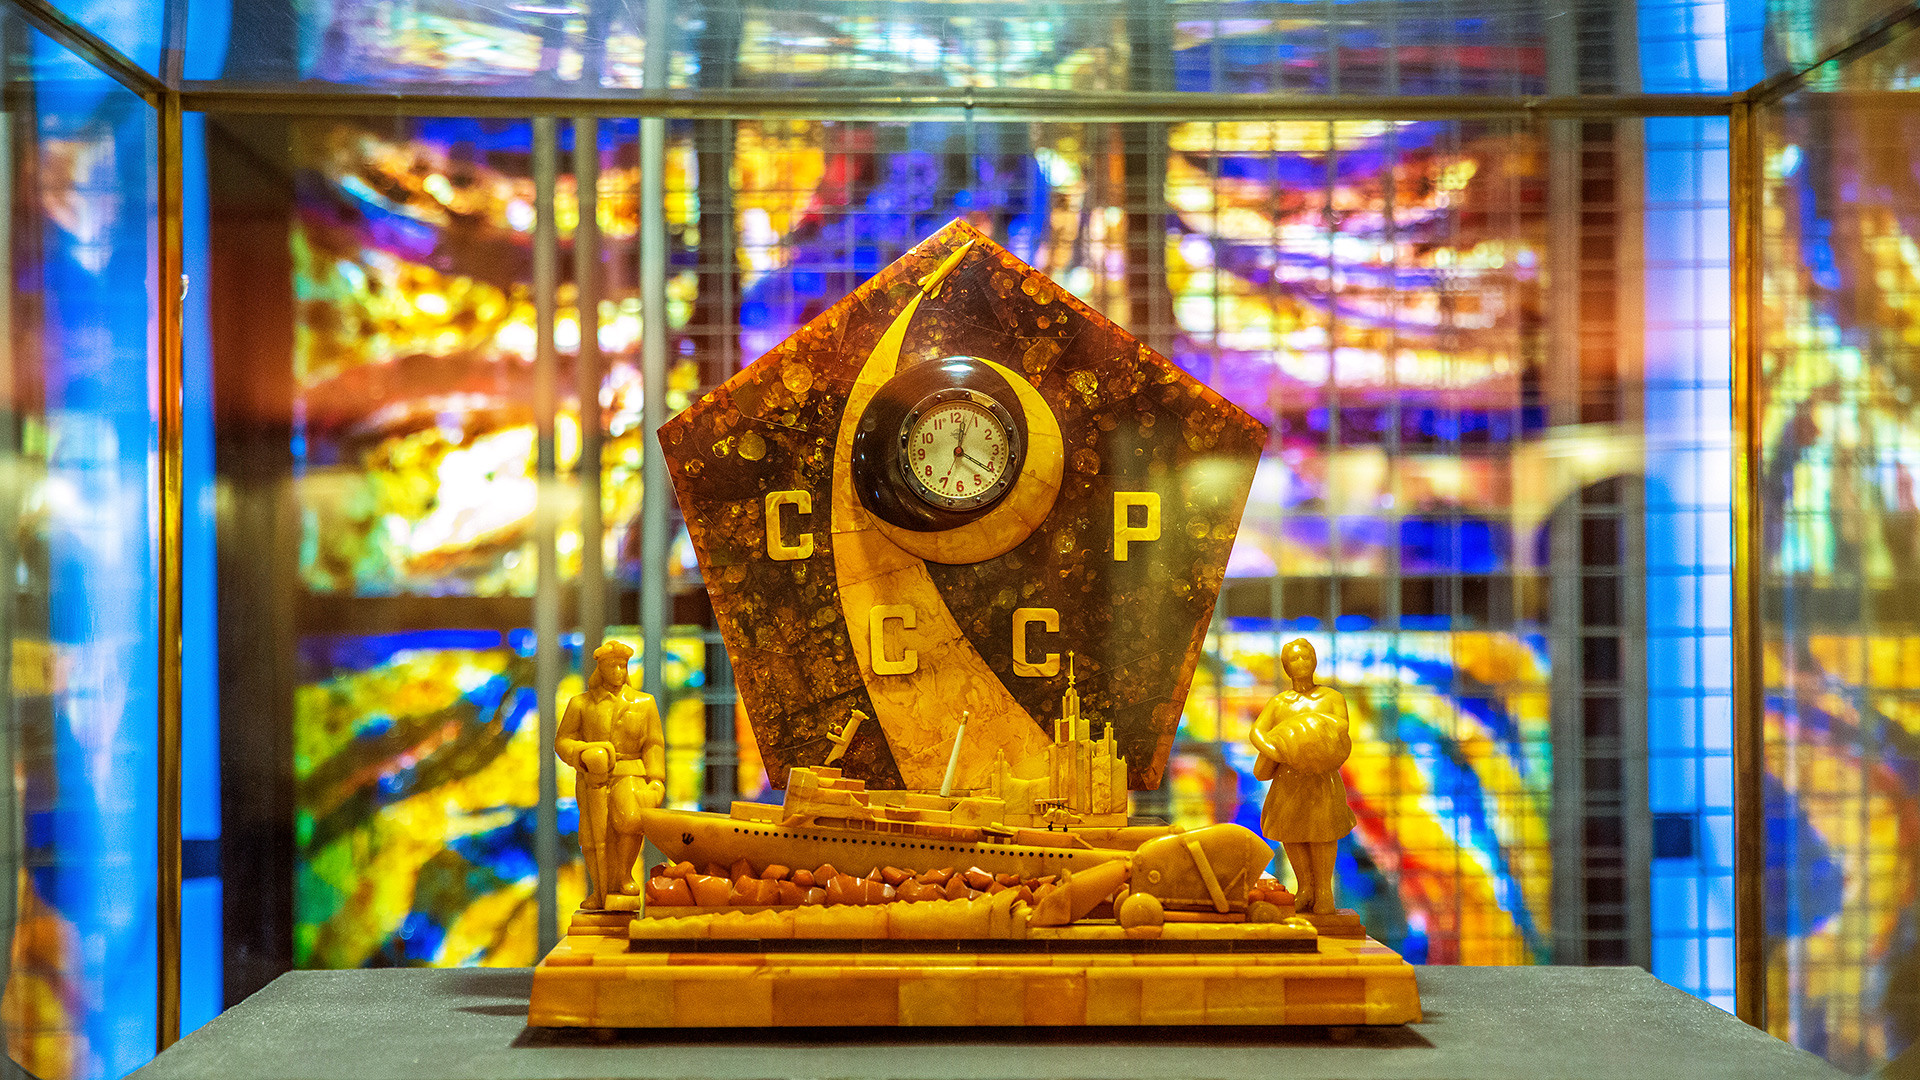 'Epoch' clock at the Amber Museum